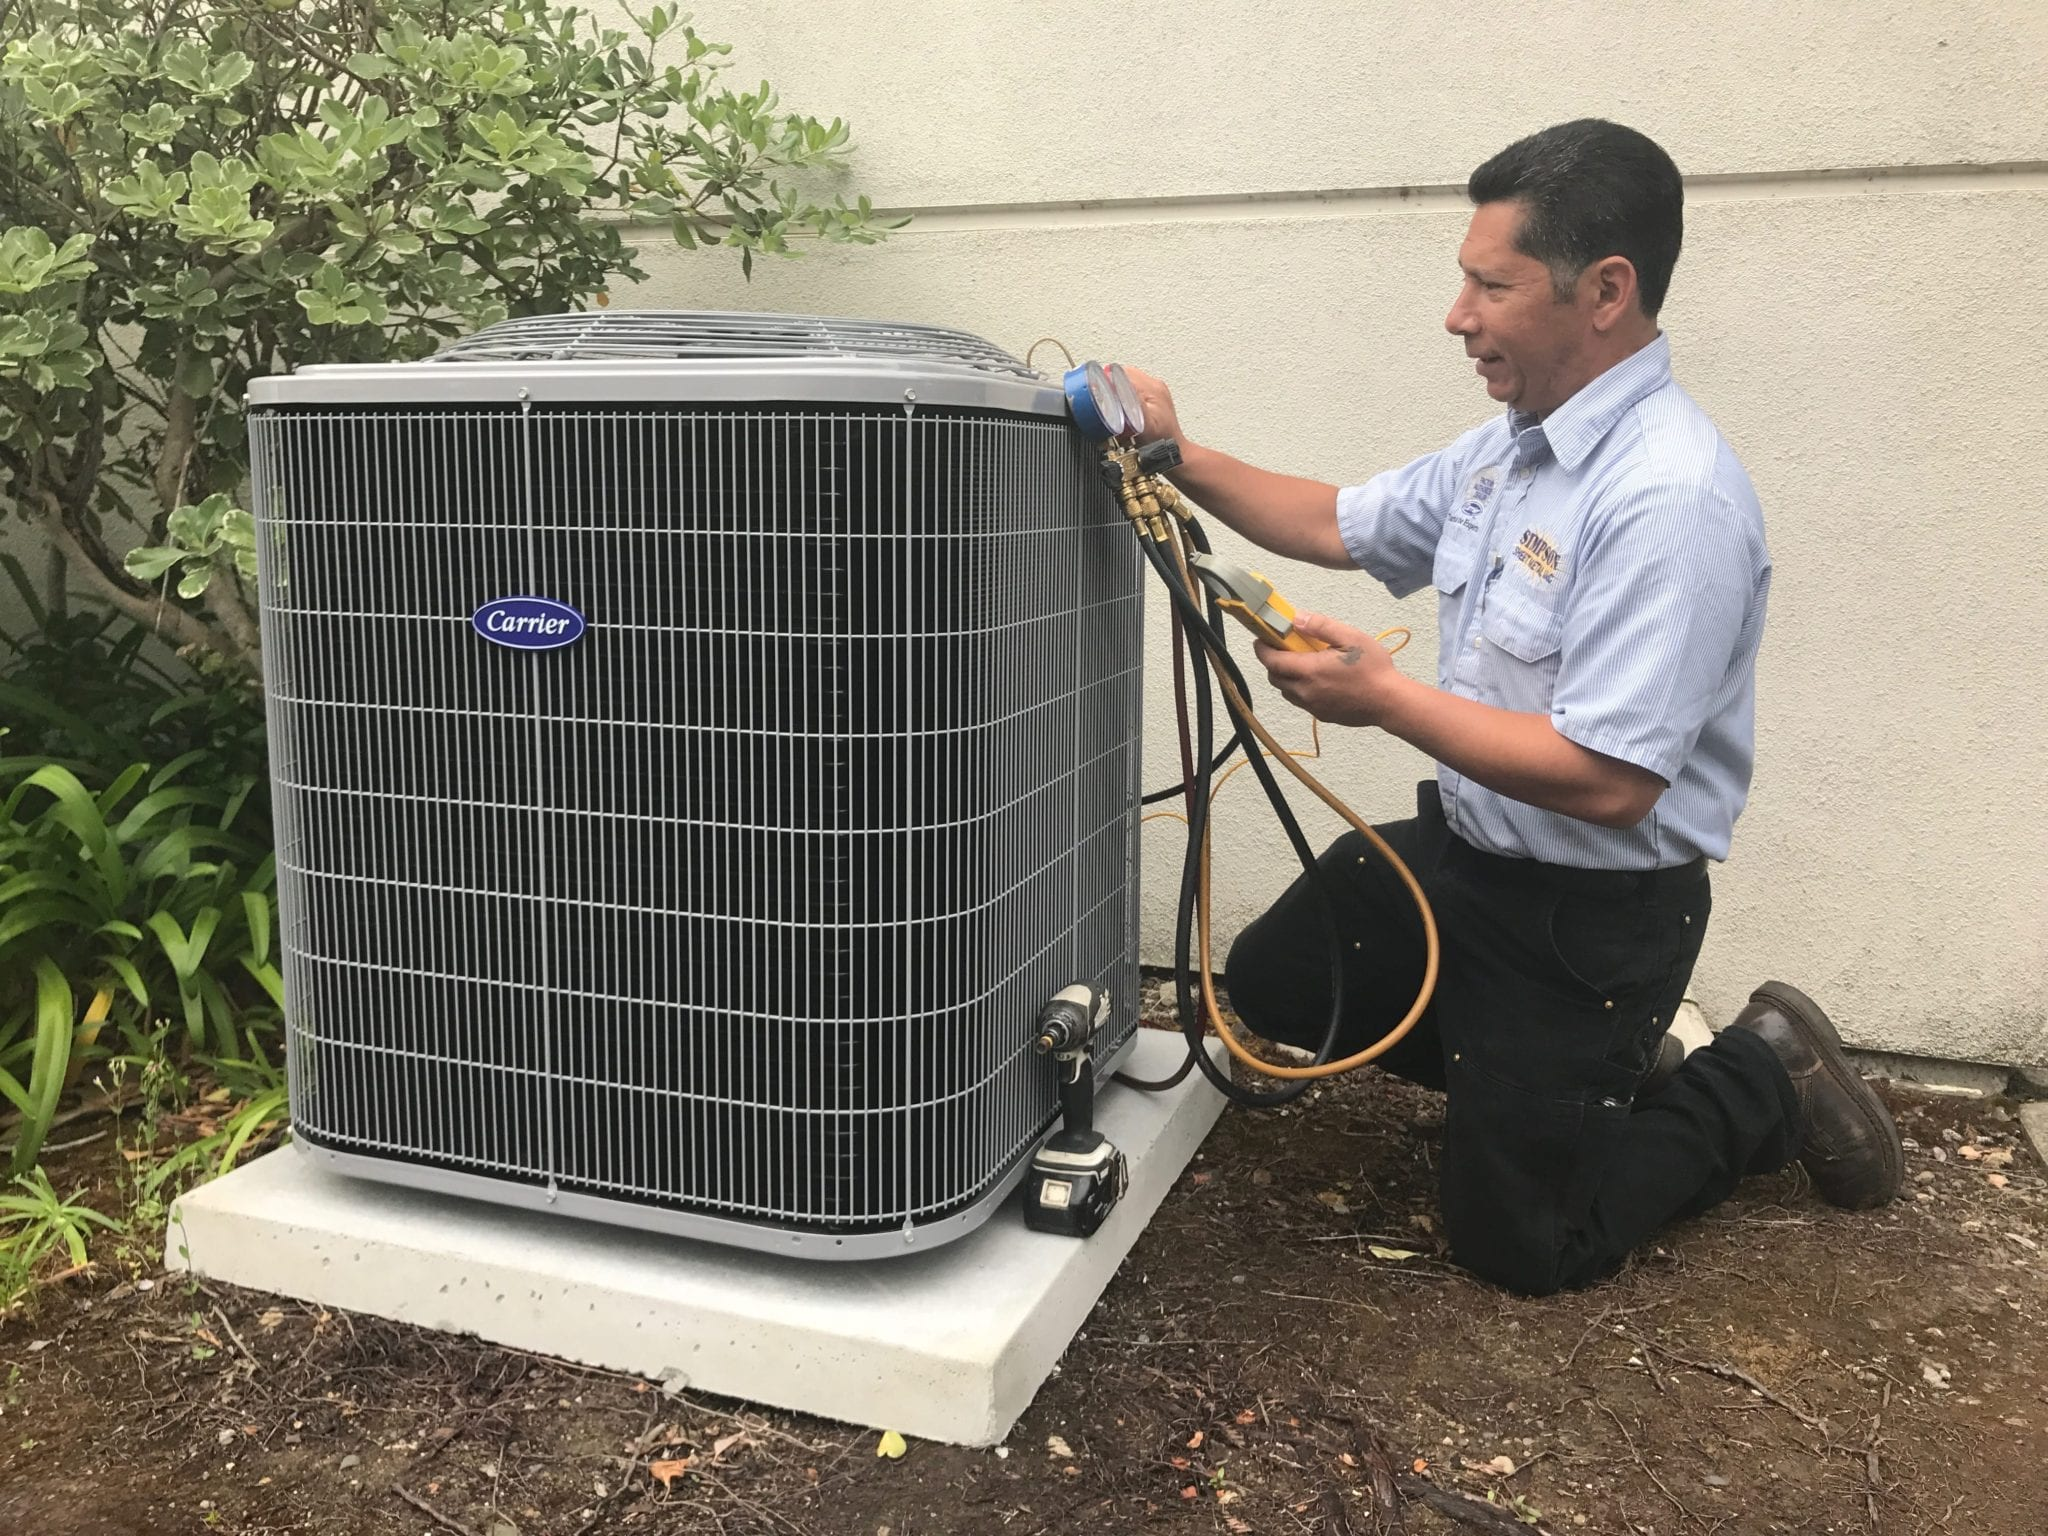 Types of Central Air Conditioners for Homes